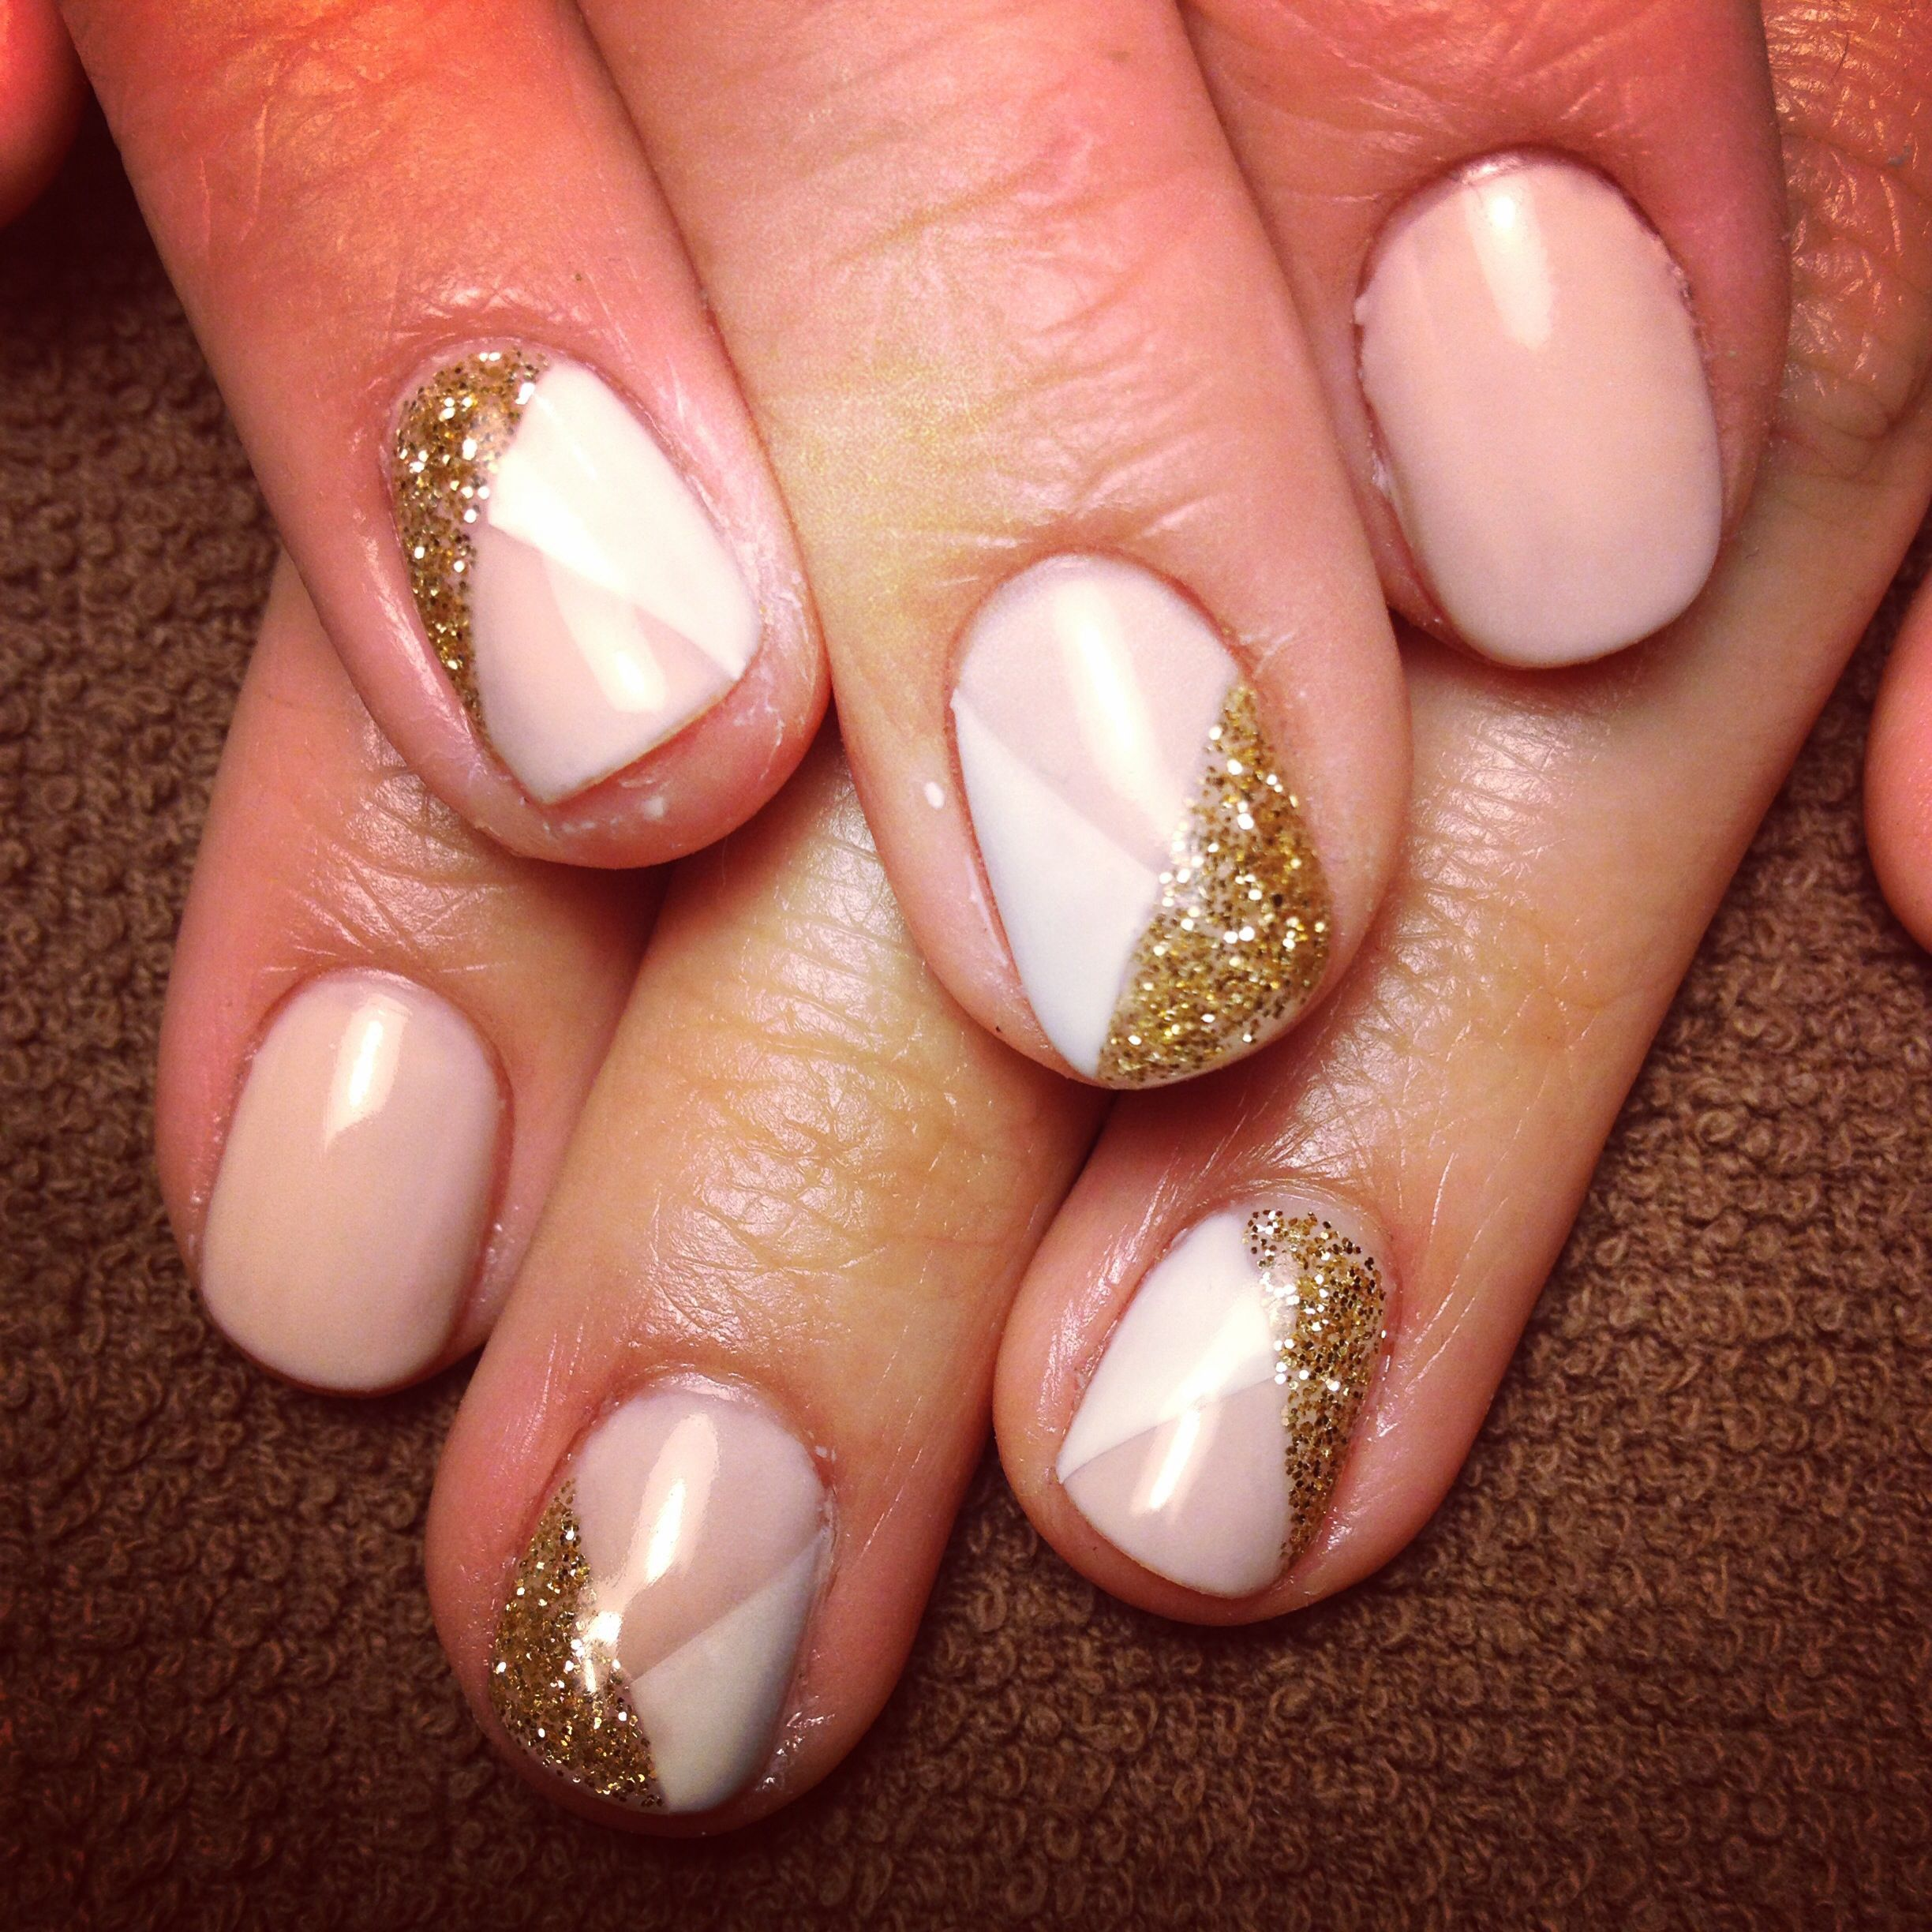 Nail art gold nude white accent glitter nails geometric gel polish ...